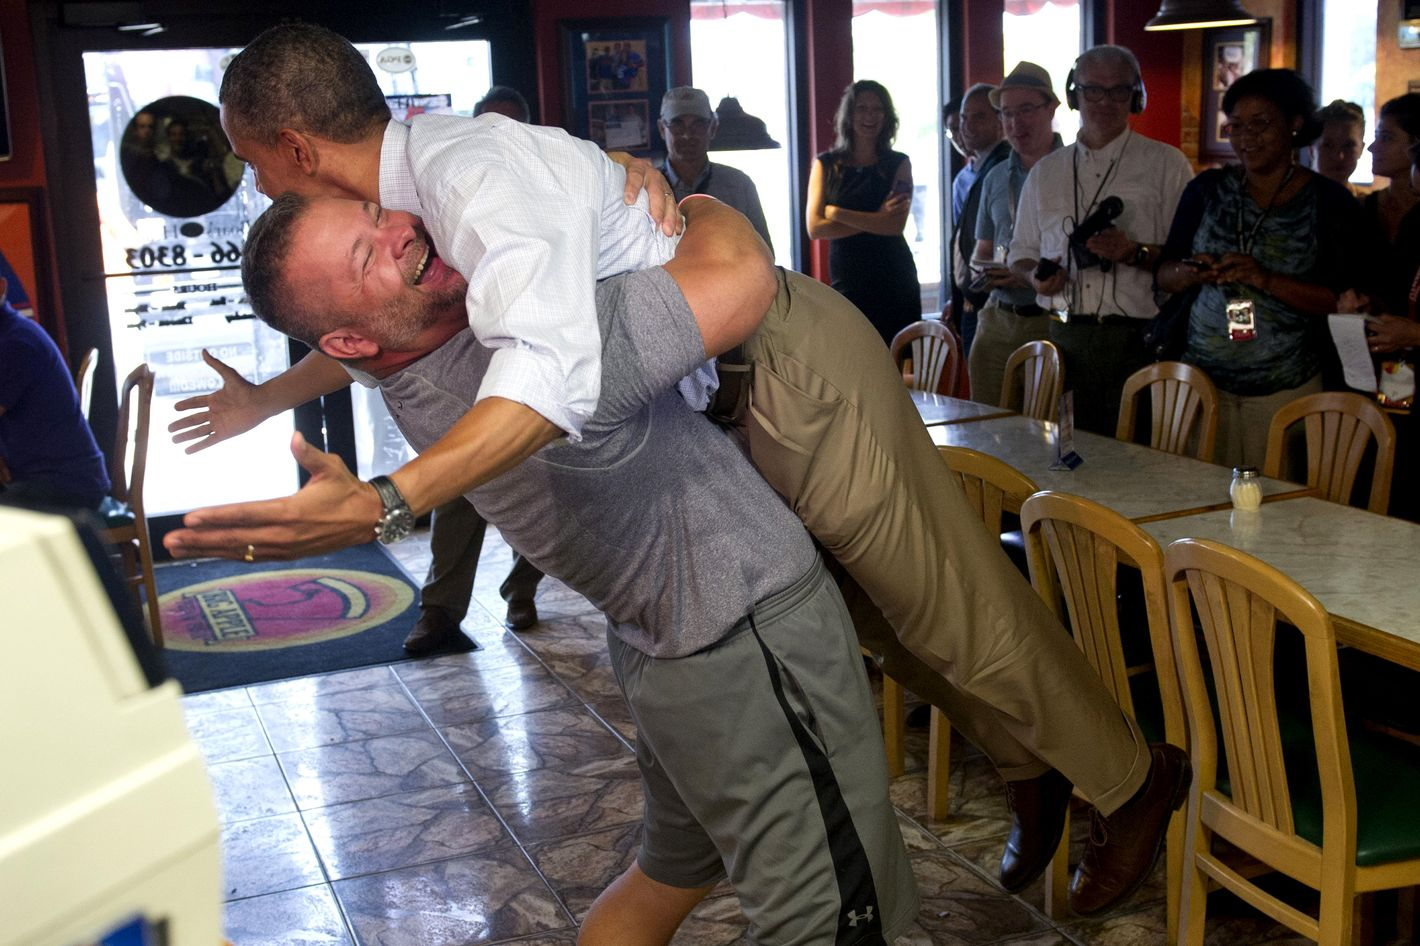 Obama's a good sport during an election year.